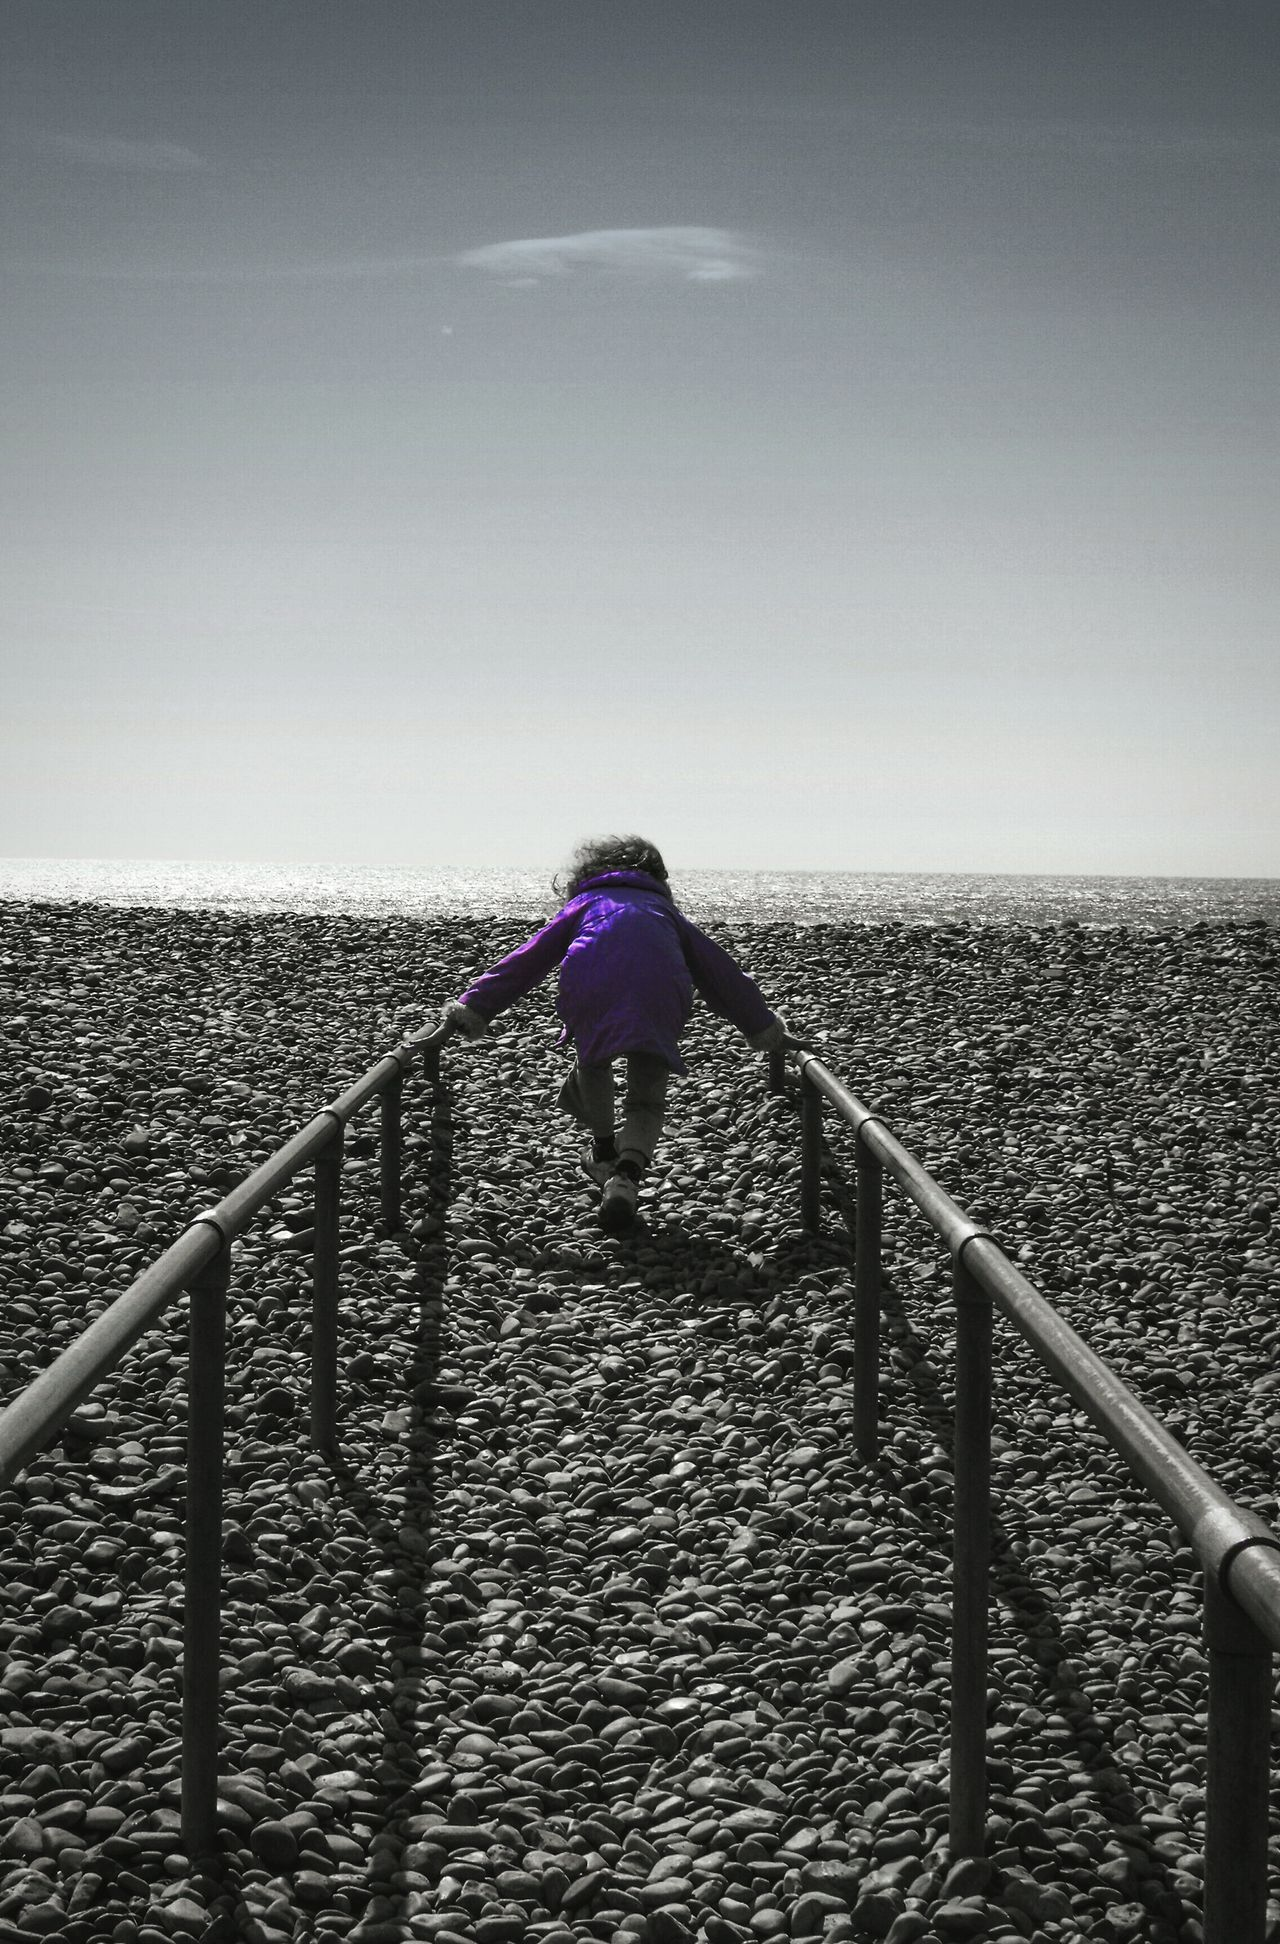 ... Who is going to stop me? ... Child Running Sea Beach Rails Cloud Pebbles Symmetry Perspective Leisure Activity Cloud - Sky One Person People Water Sky Day Nature Outdoors Horizon Over Water Full Length Purple Grey Messing Around Kid Girl